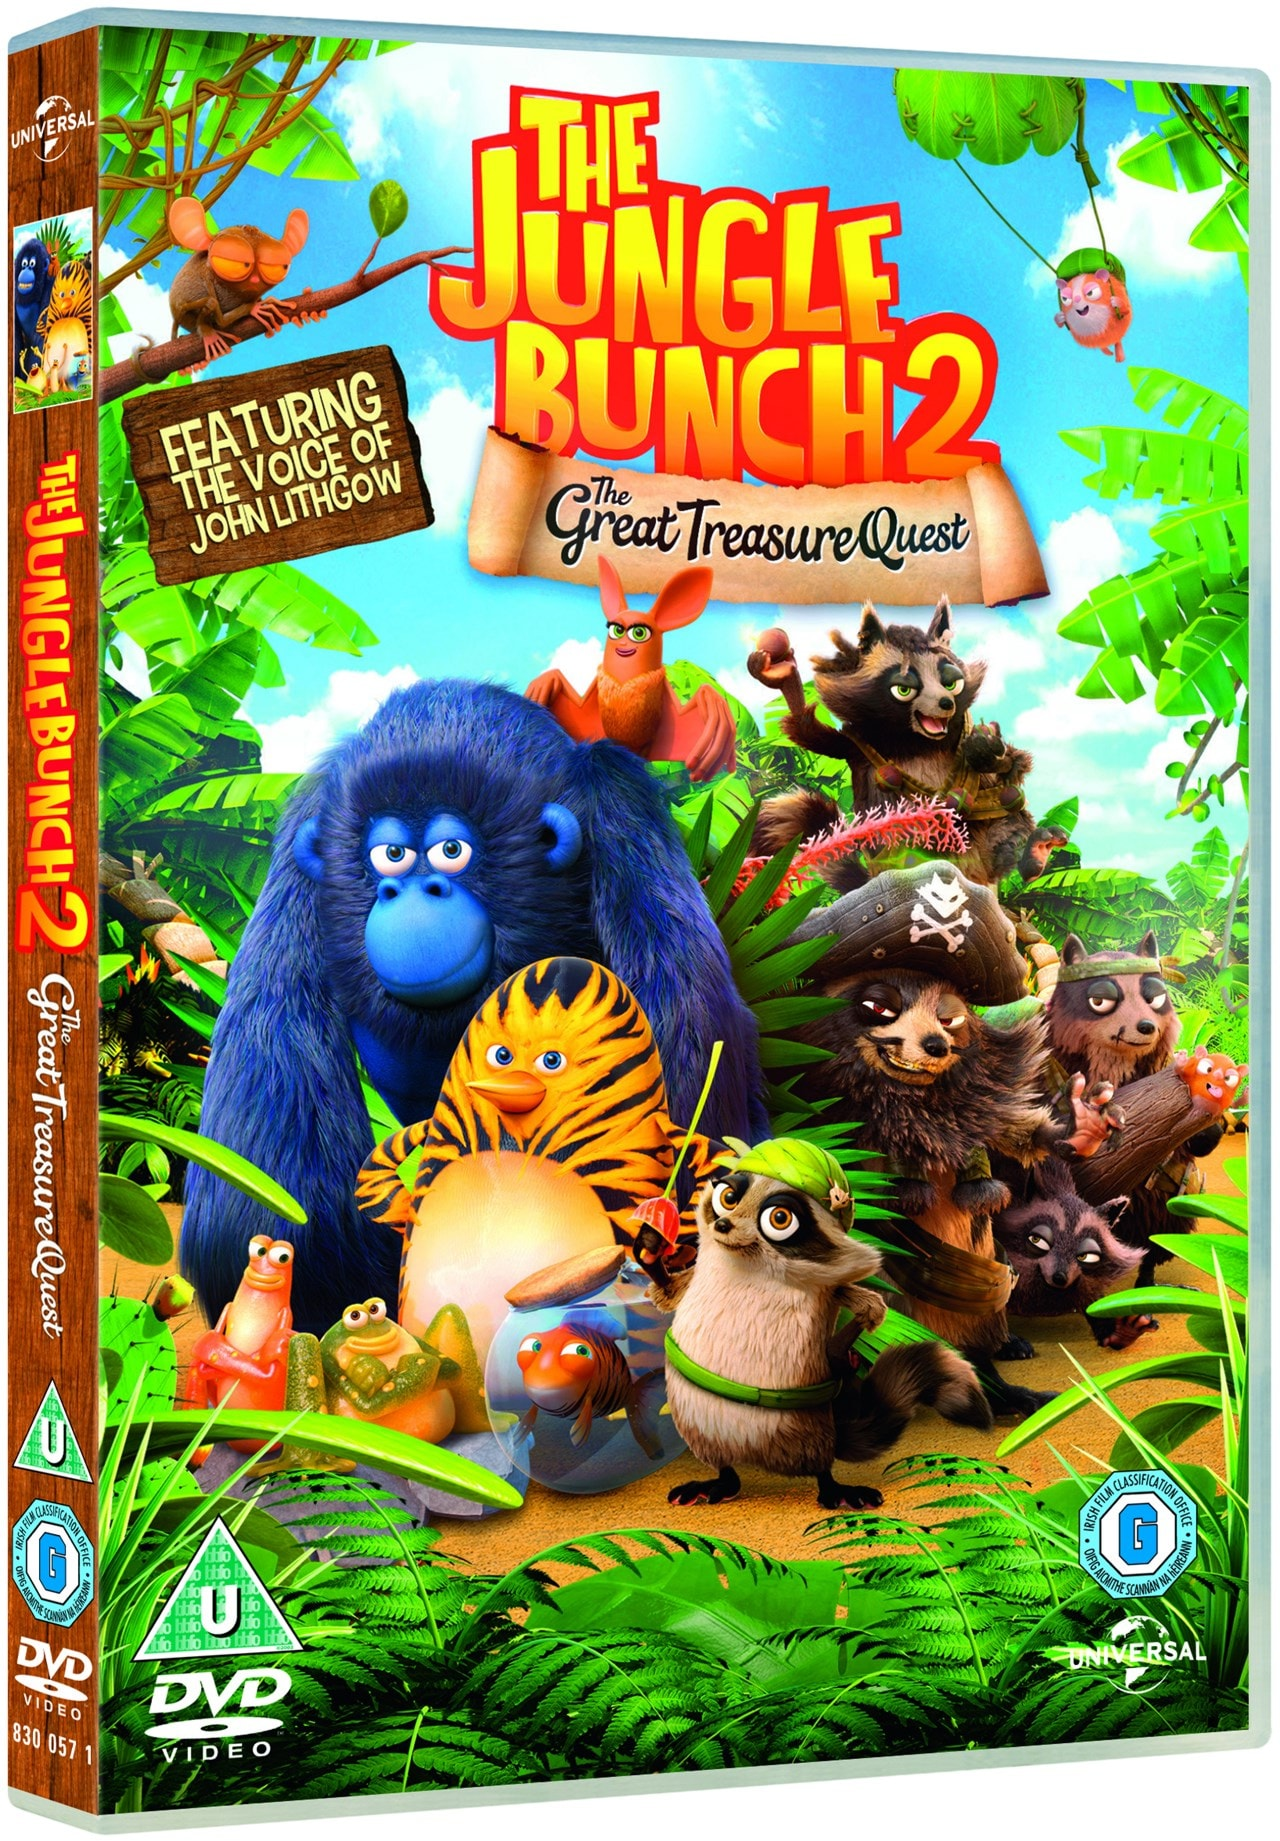 The Jungle Bunch 2: The Great Treasure Quest - 2